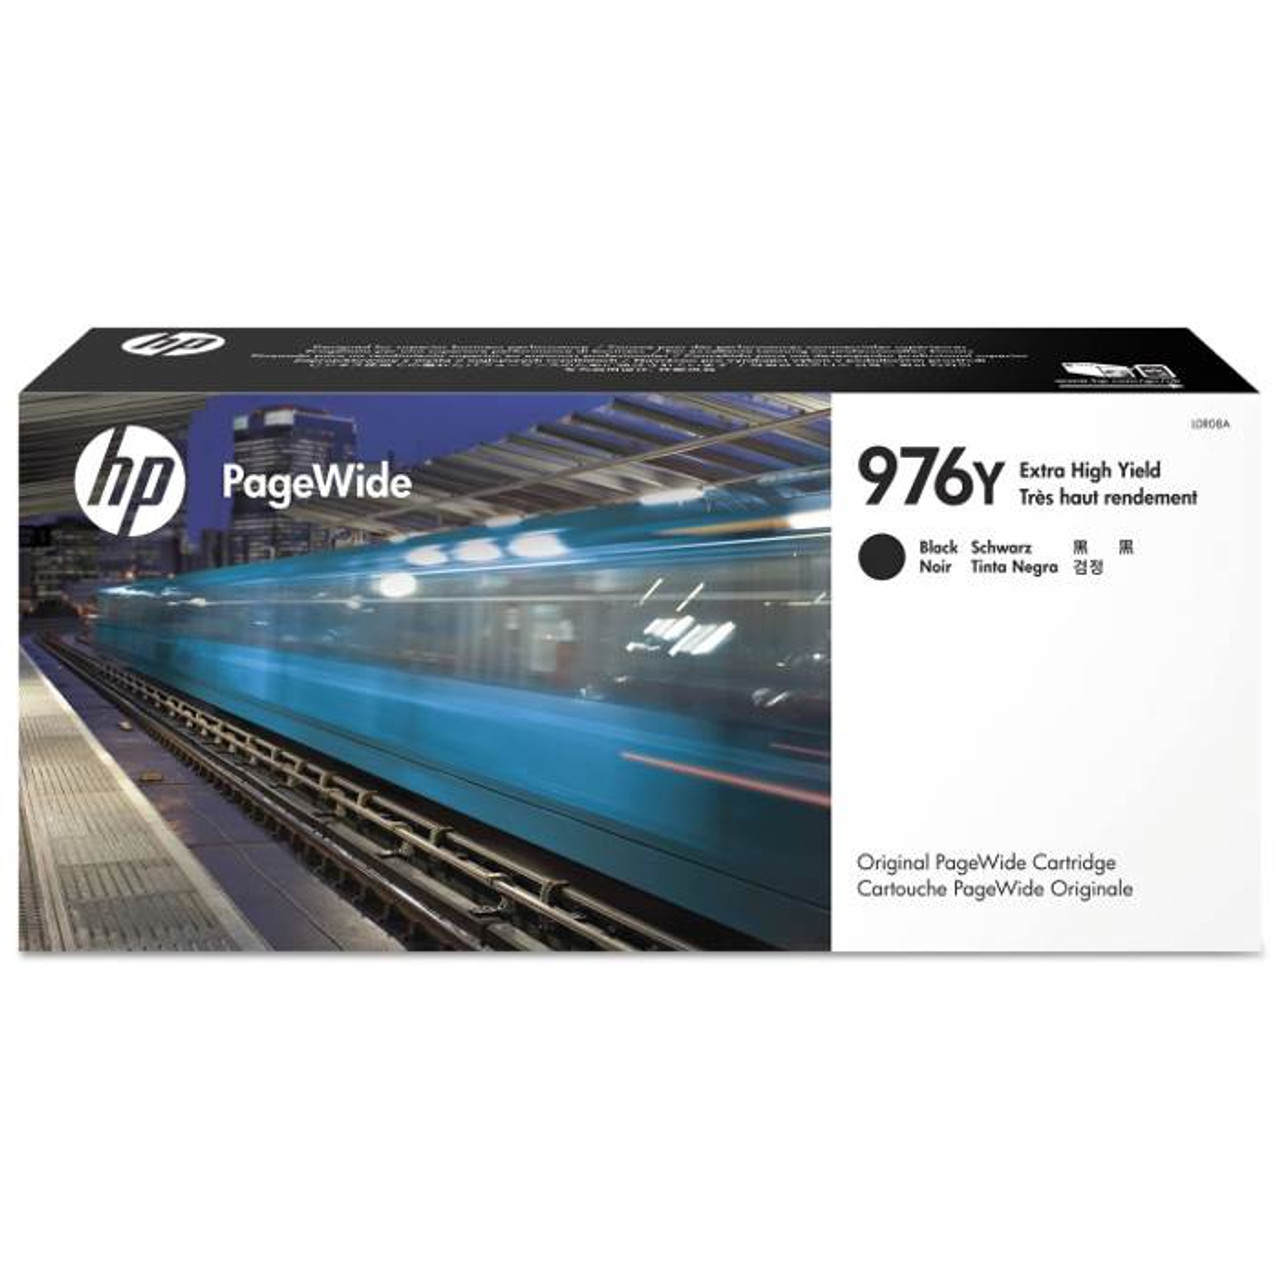 Image for HP 976Y Extra High Yield Black Original PageWide Cartridge (L0R08A) CX Computer Superstore